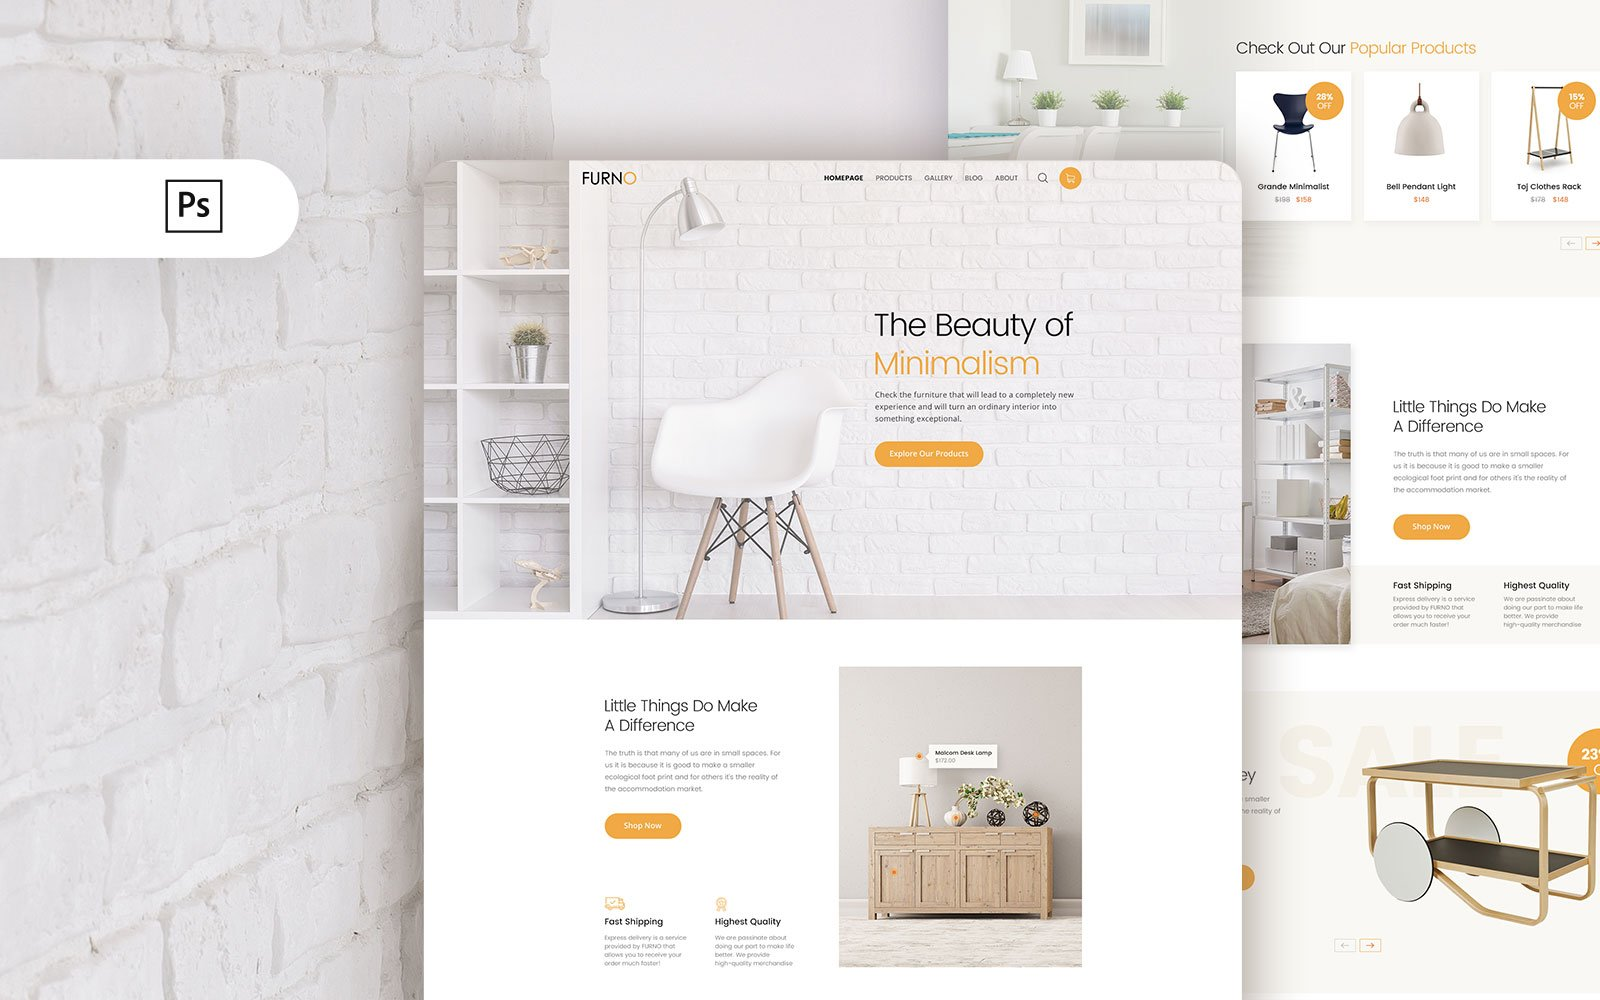 Furno - Furniture Online Shop Landing PSD Template